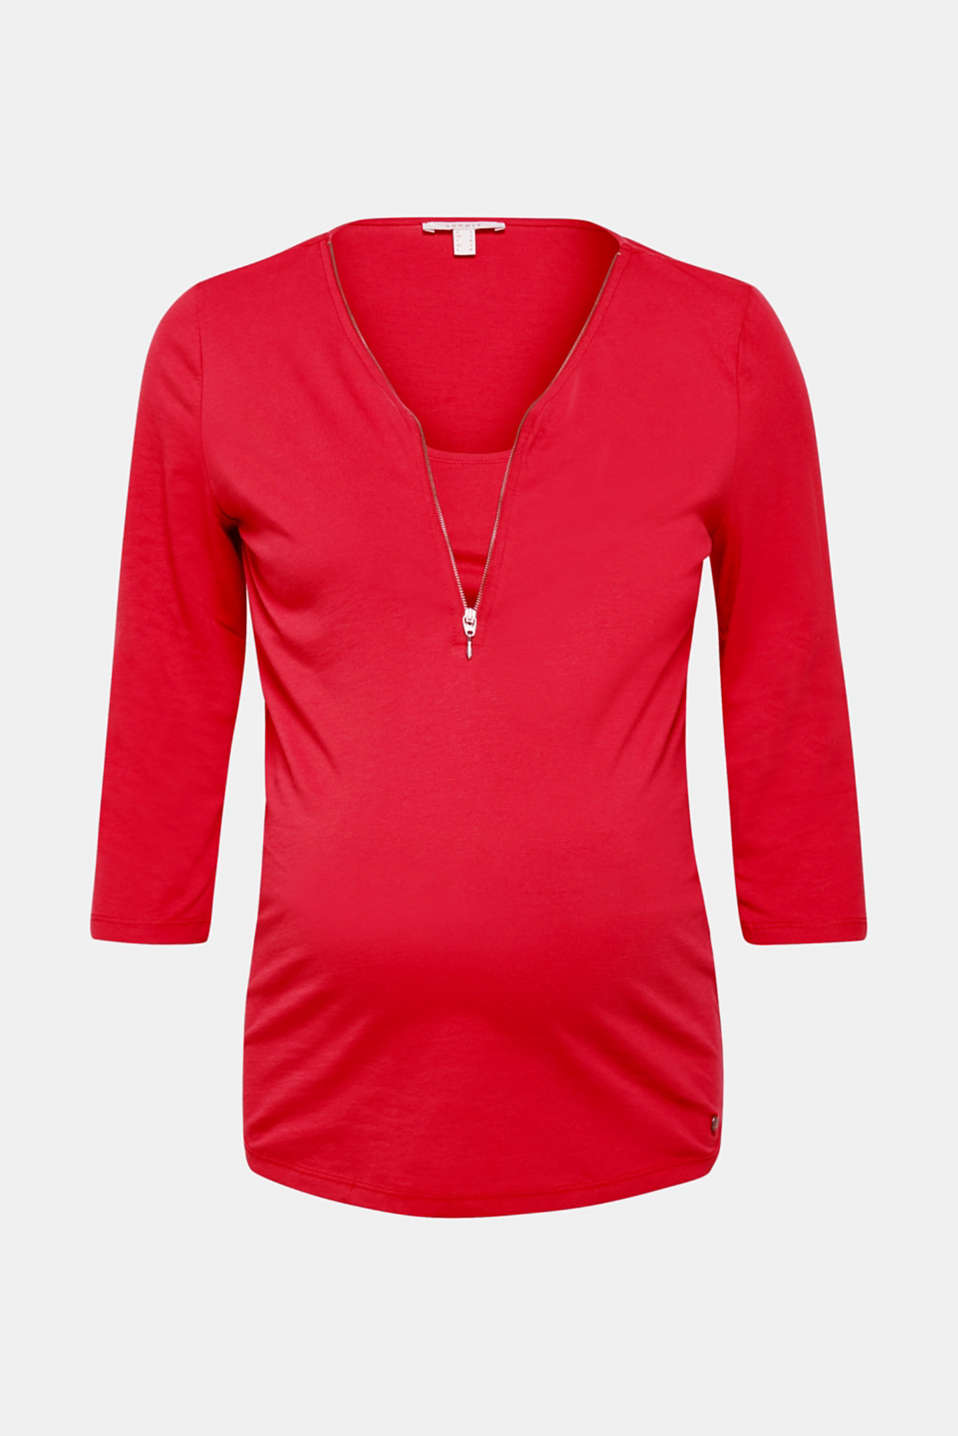 The zip at the neckline of this stretch T-shirt isn't just eye-catching but also makes nursing extremely easy.